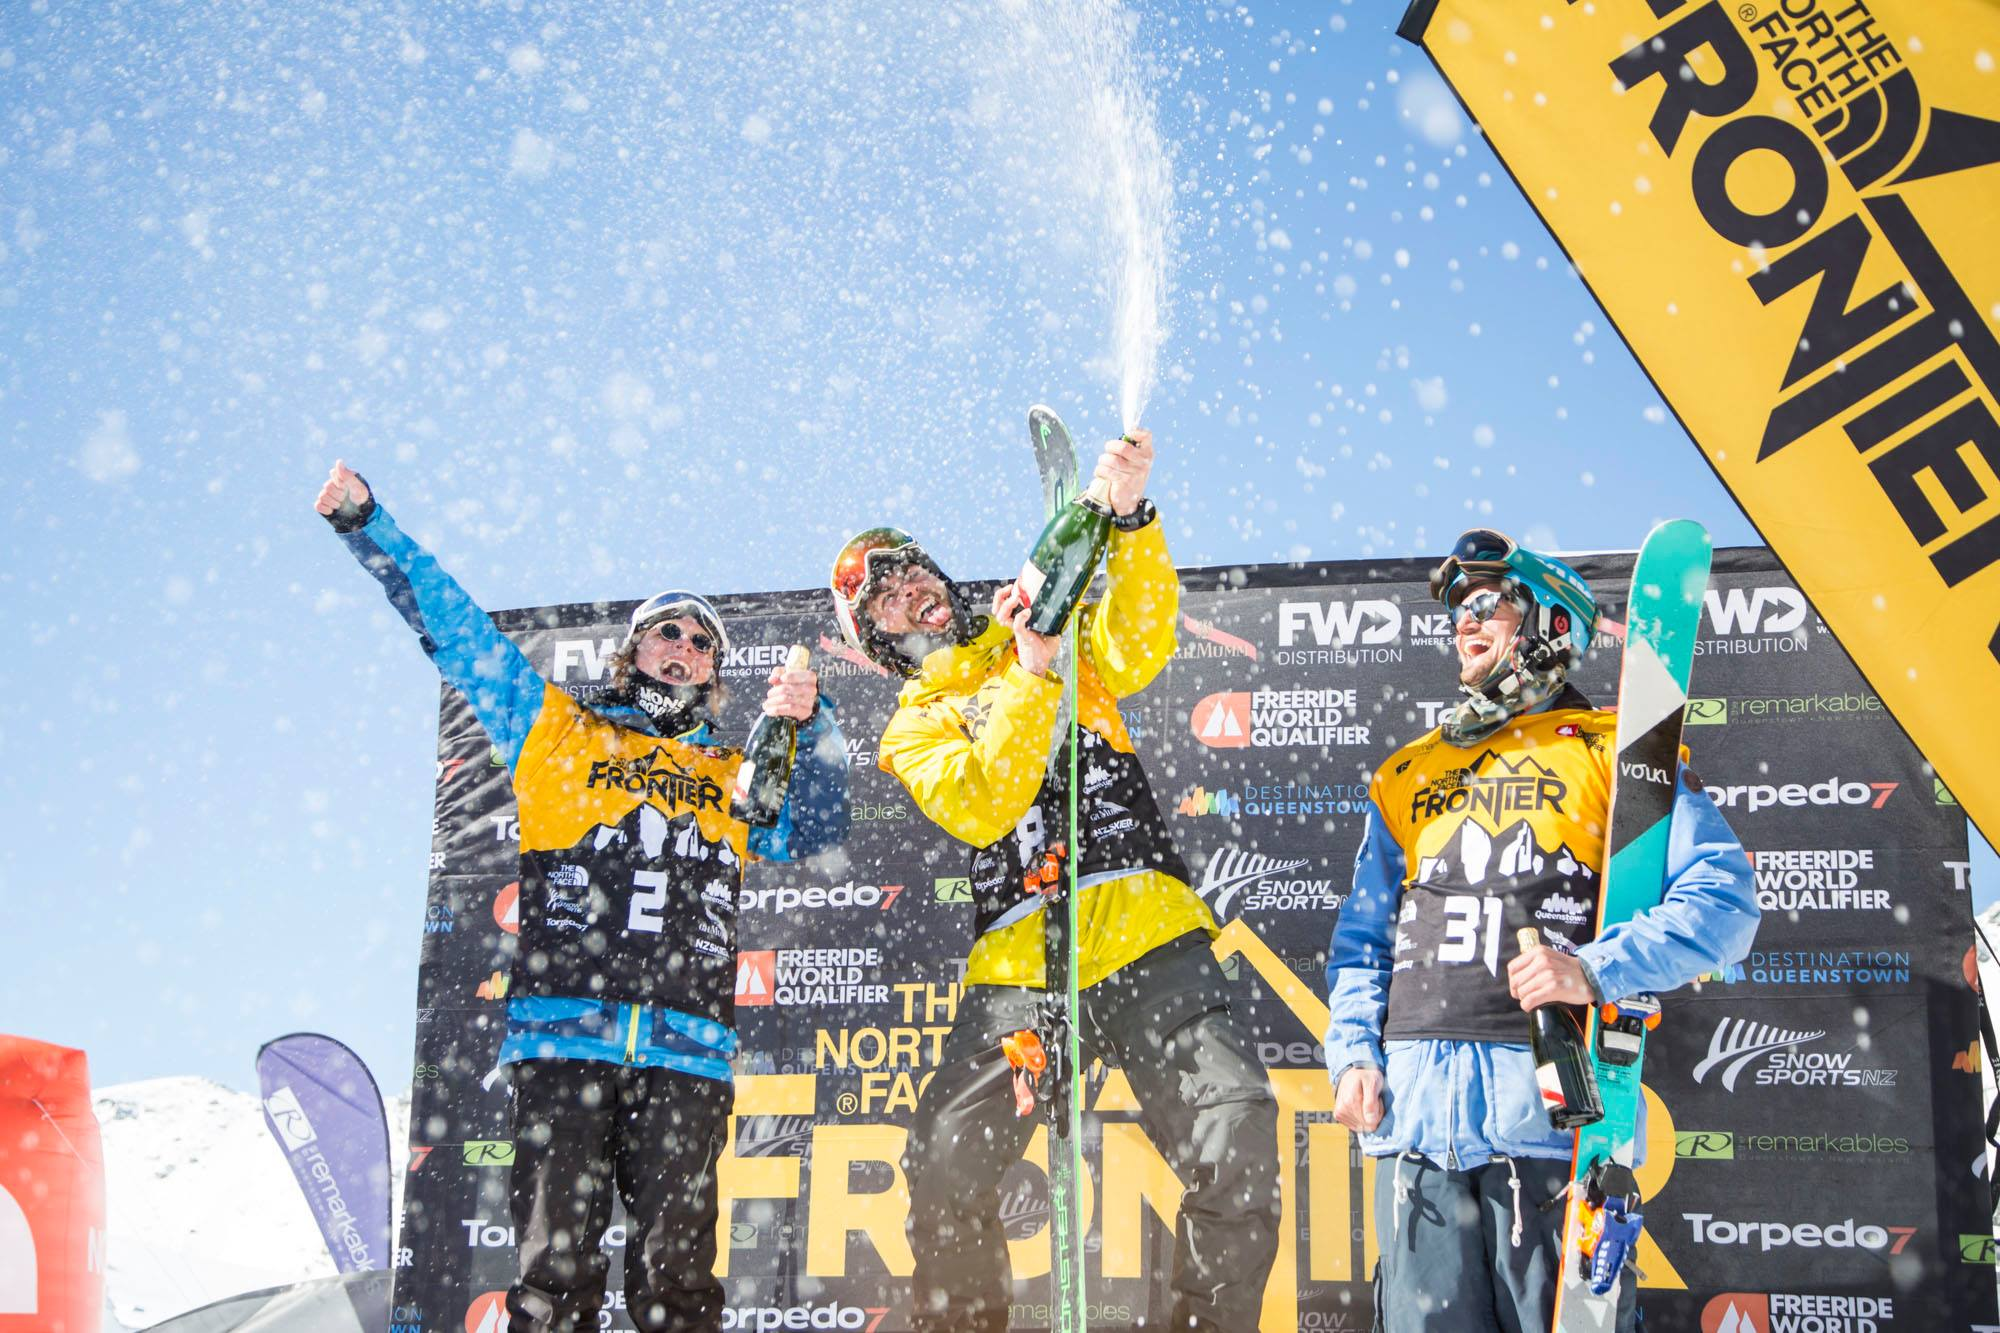 My first time spraying champagne was exactly as fun as I imagined it would be!  PHOTO - THE NORTH FACE FRONTIER